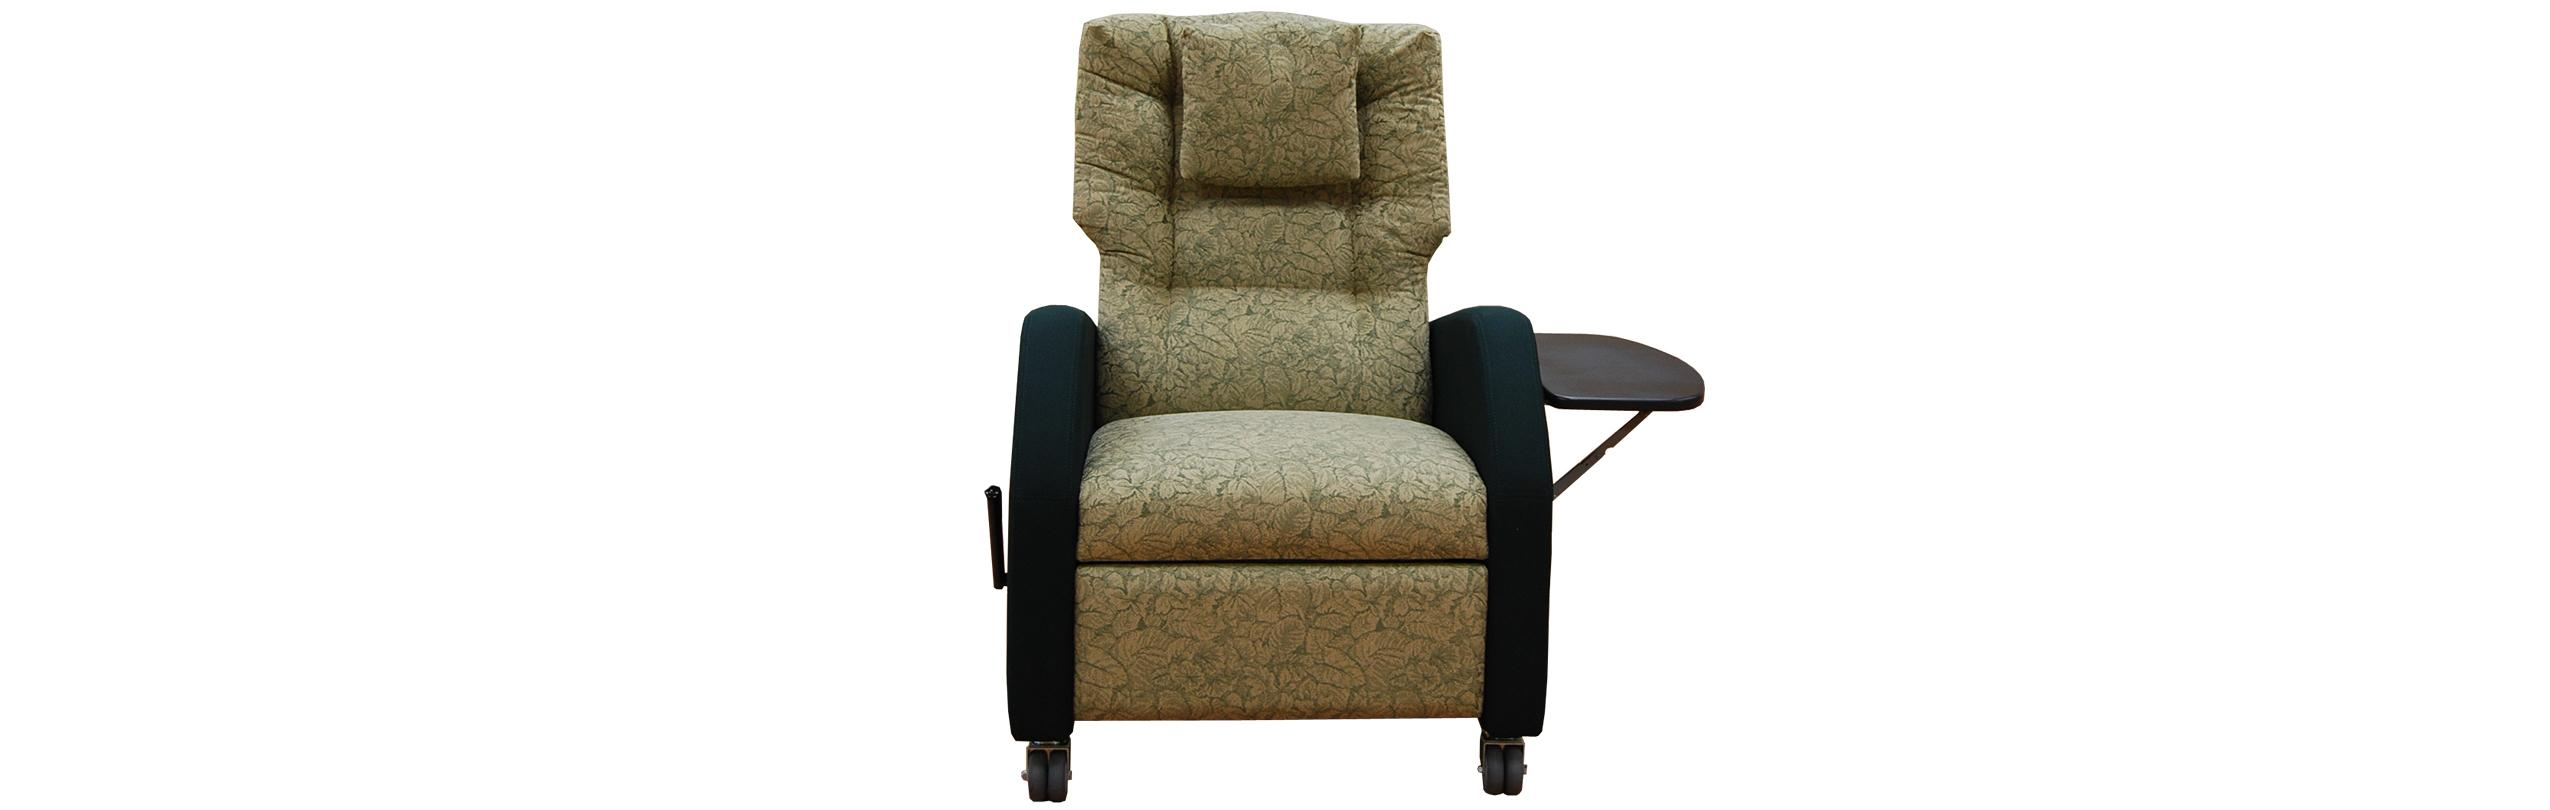 side chair seat care amazon left recliner table overbed medical com drive dp walnut personal health lift ln hospital